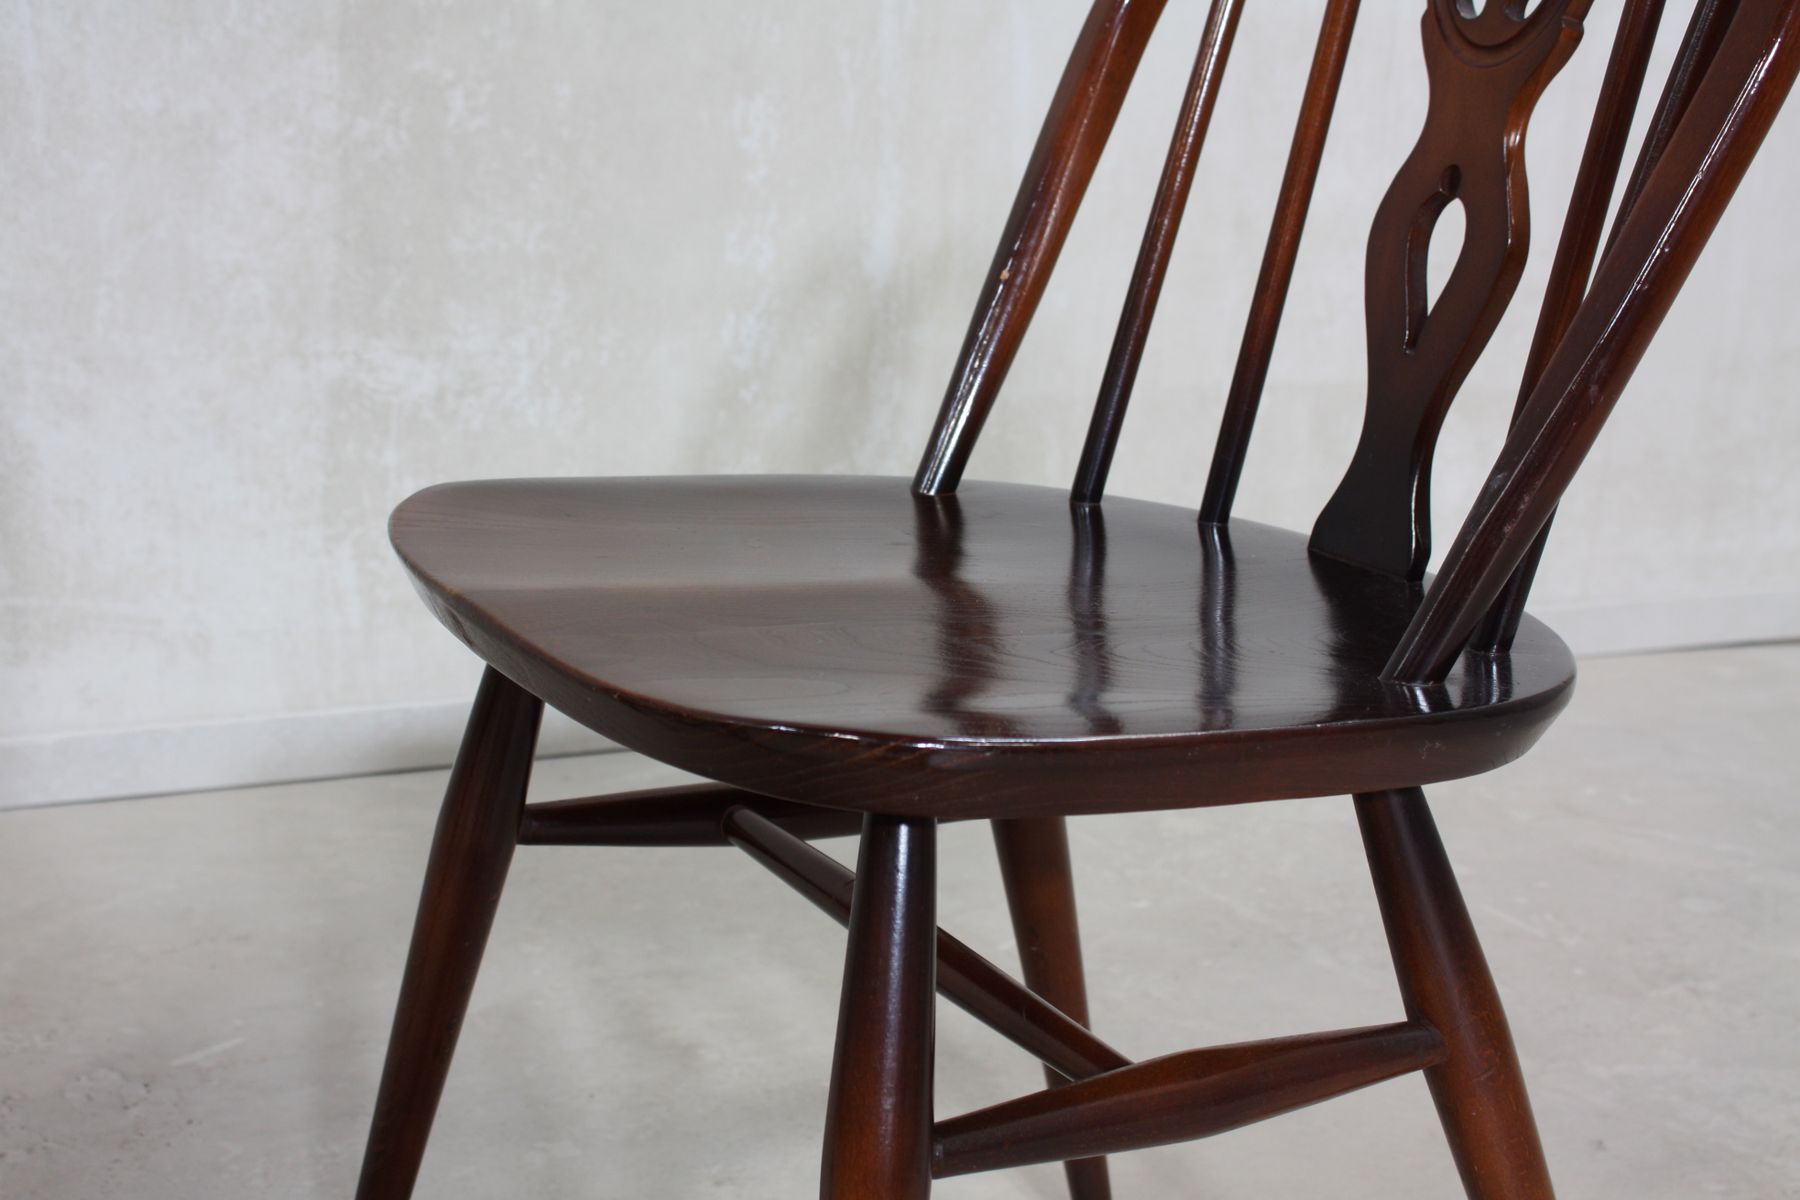 371 & 371A Windsor Dining Chairs by Lucian Ercolani for Ercol